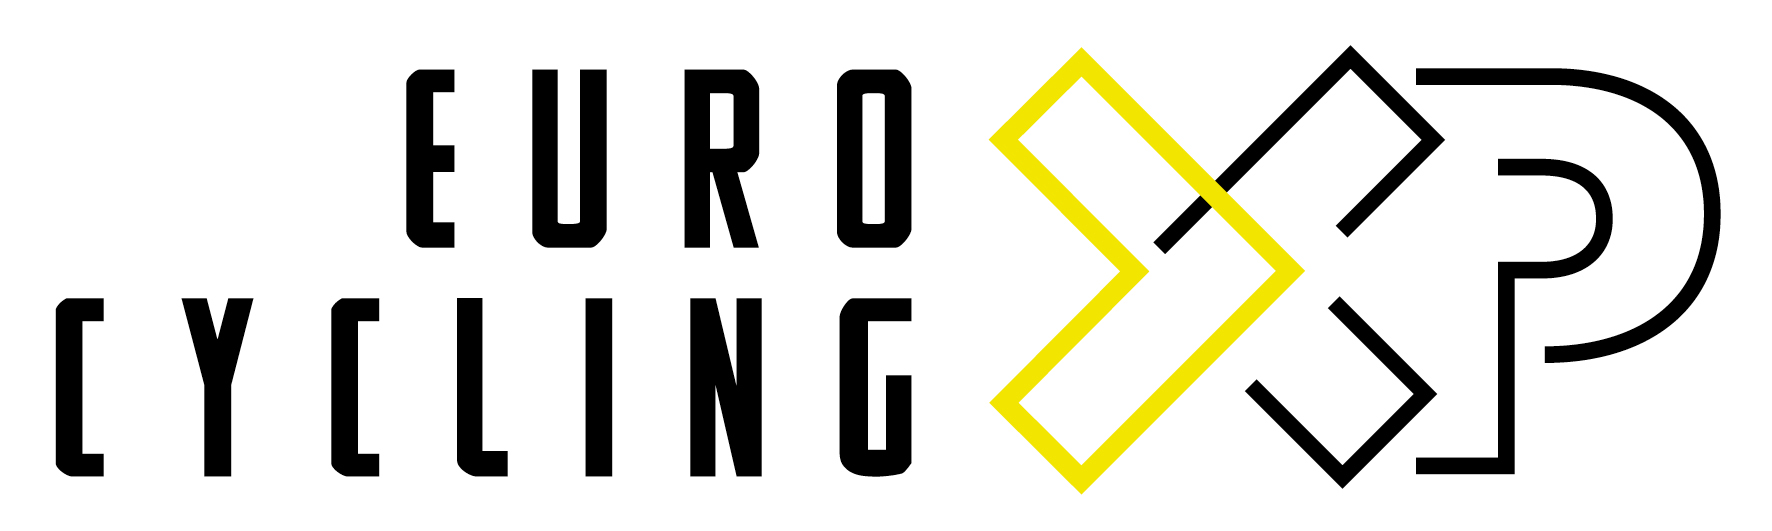 Euro Cycling XP_logo DEF